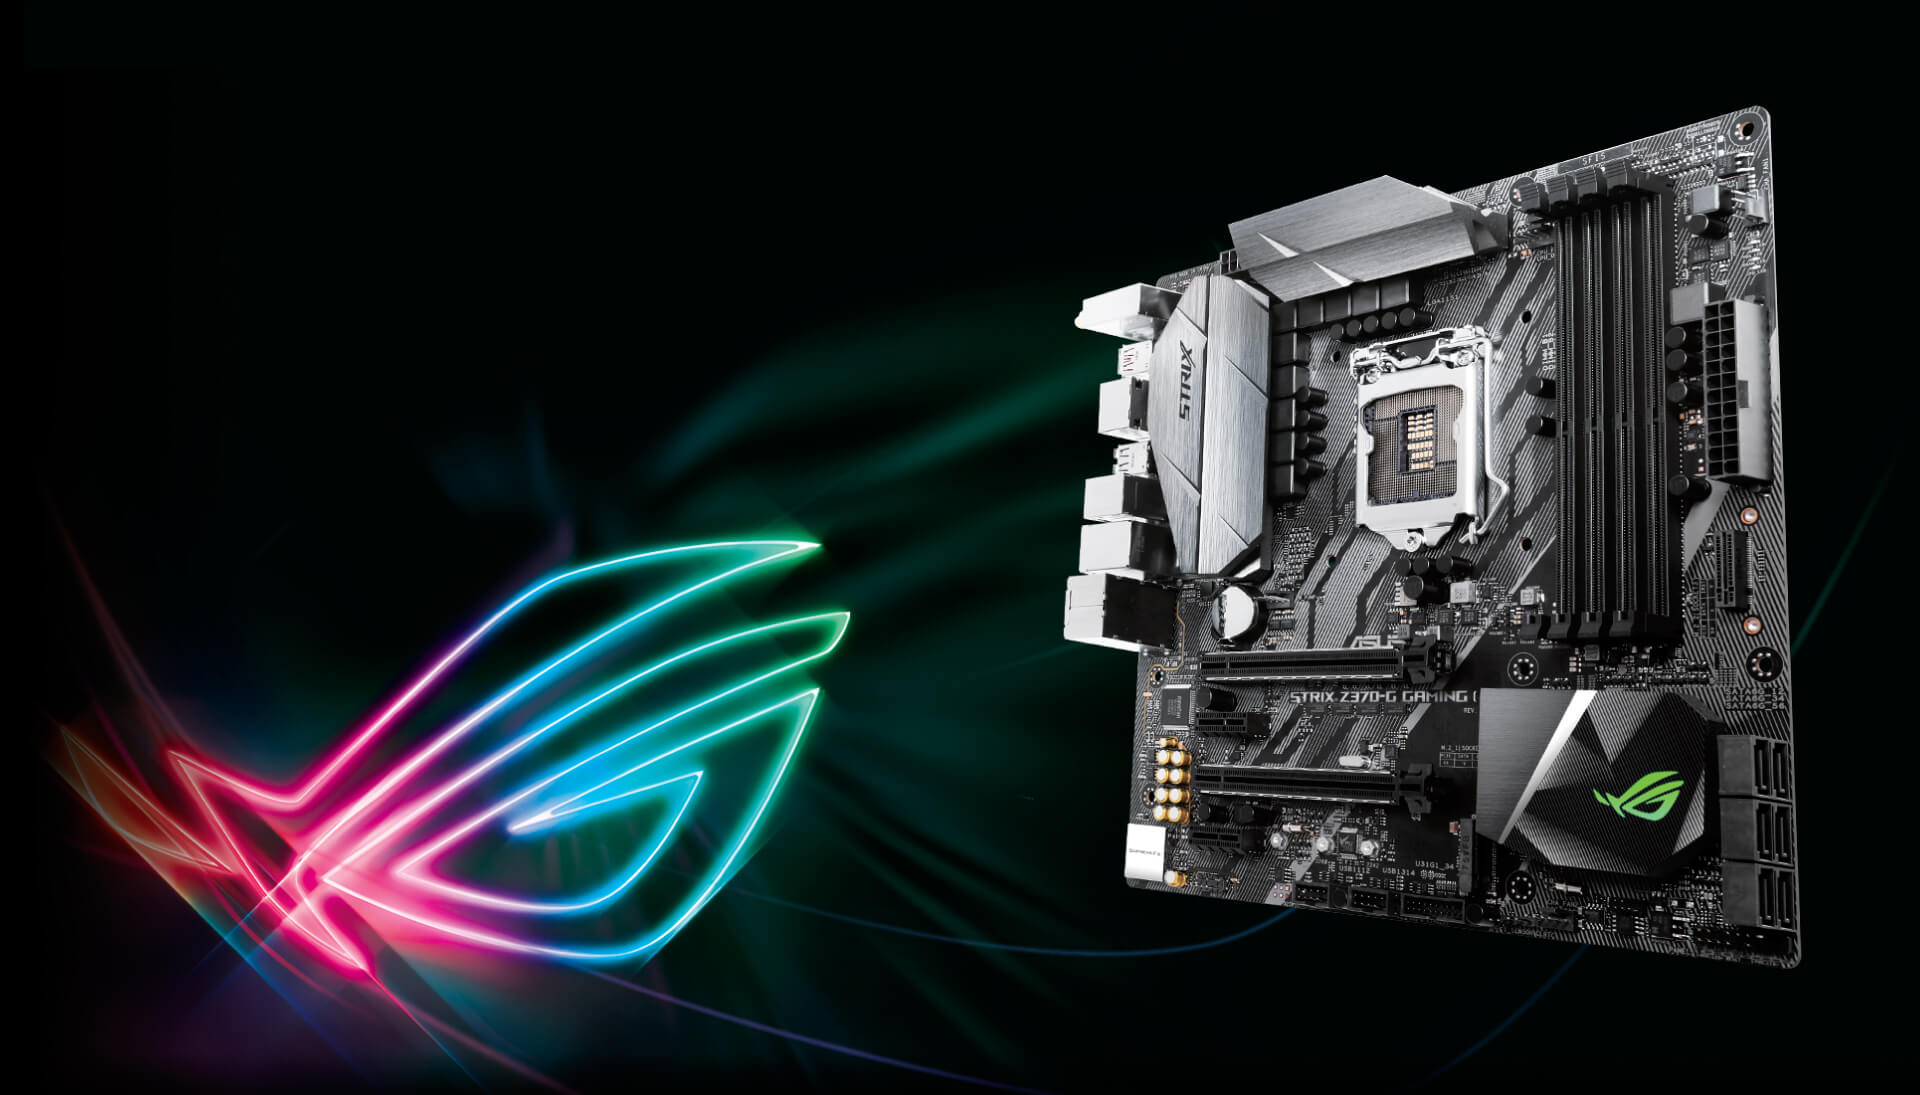 Rog Strix Z370 G Gaming Wi Fi Ac Motherboards Asus Usa 32153 Pcie Chip Factor In Custom Aura Rgb Illumination And Superior Supremefx Audio Youll Know That Looks Great Sounds Amazing